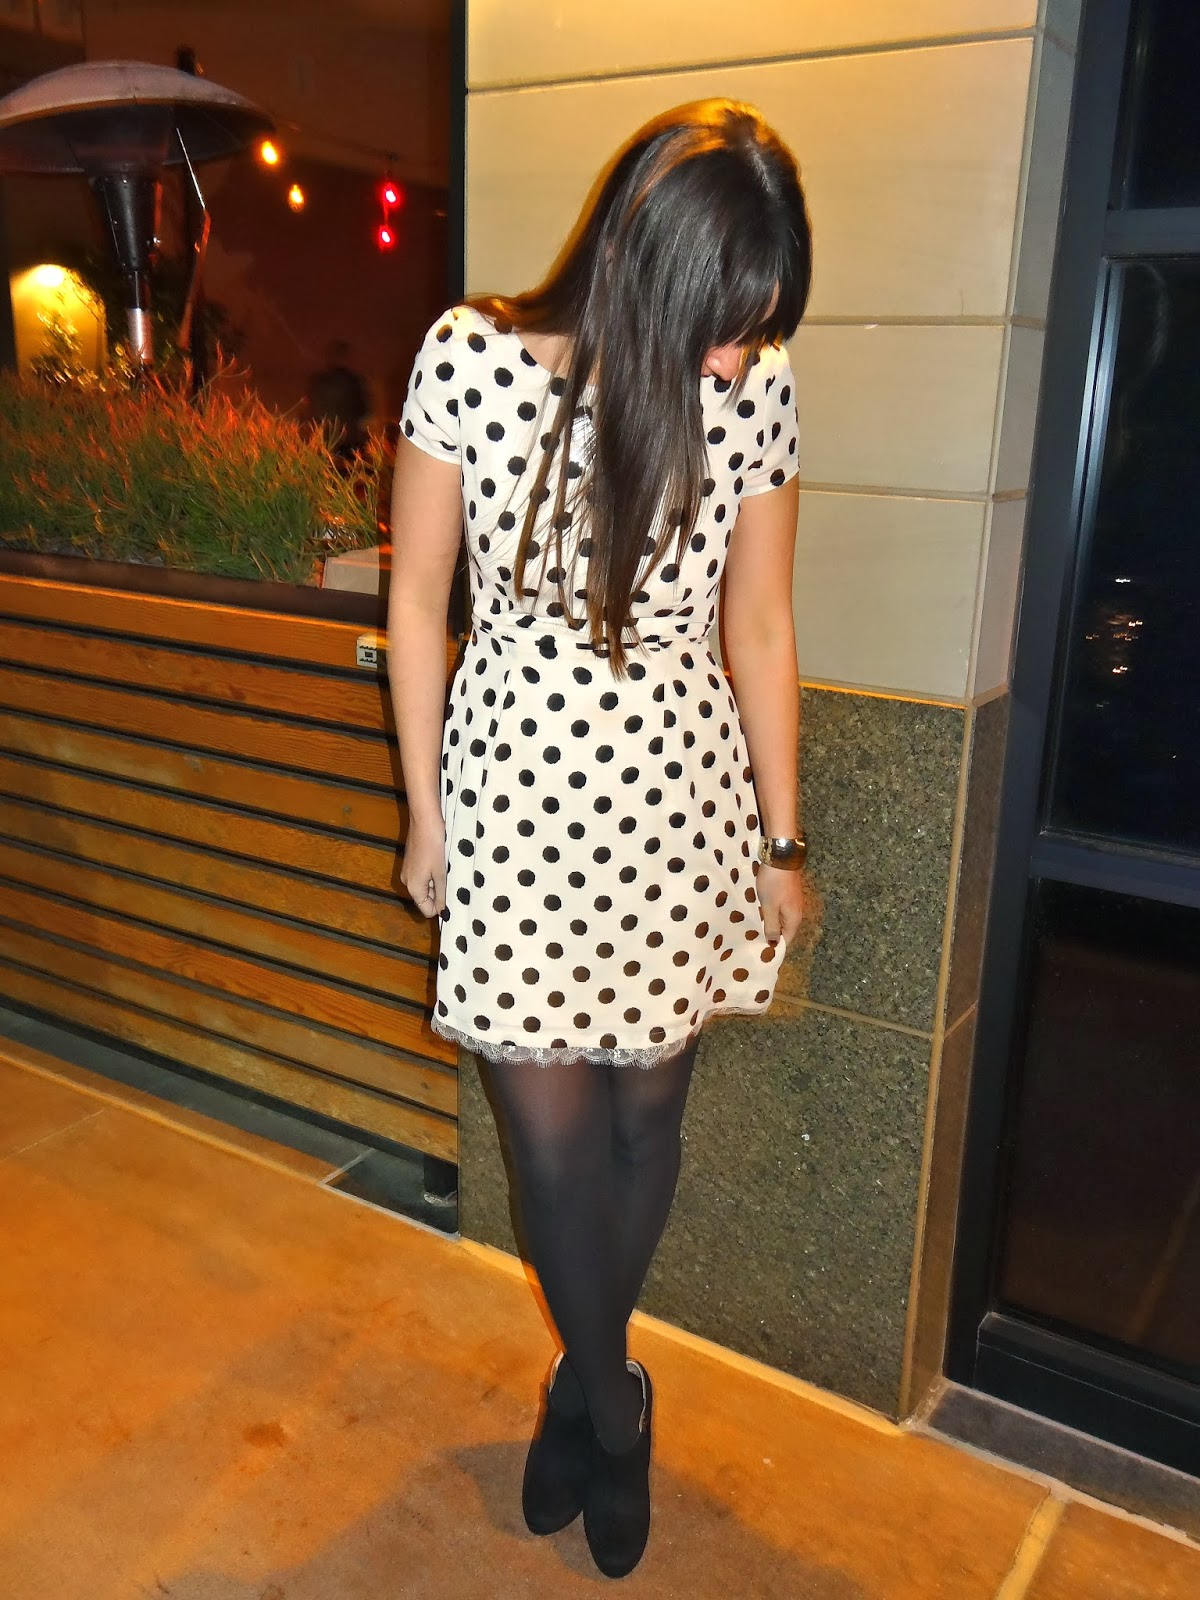 Lunavida Spotted Shift Dress Tights Ankle Booties